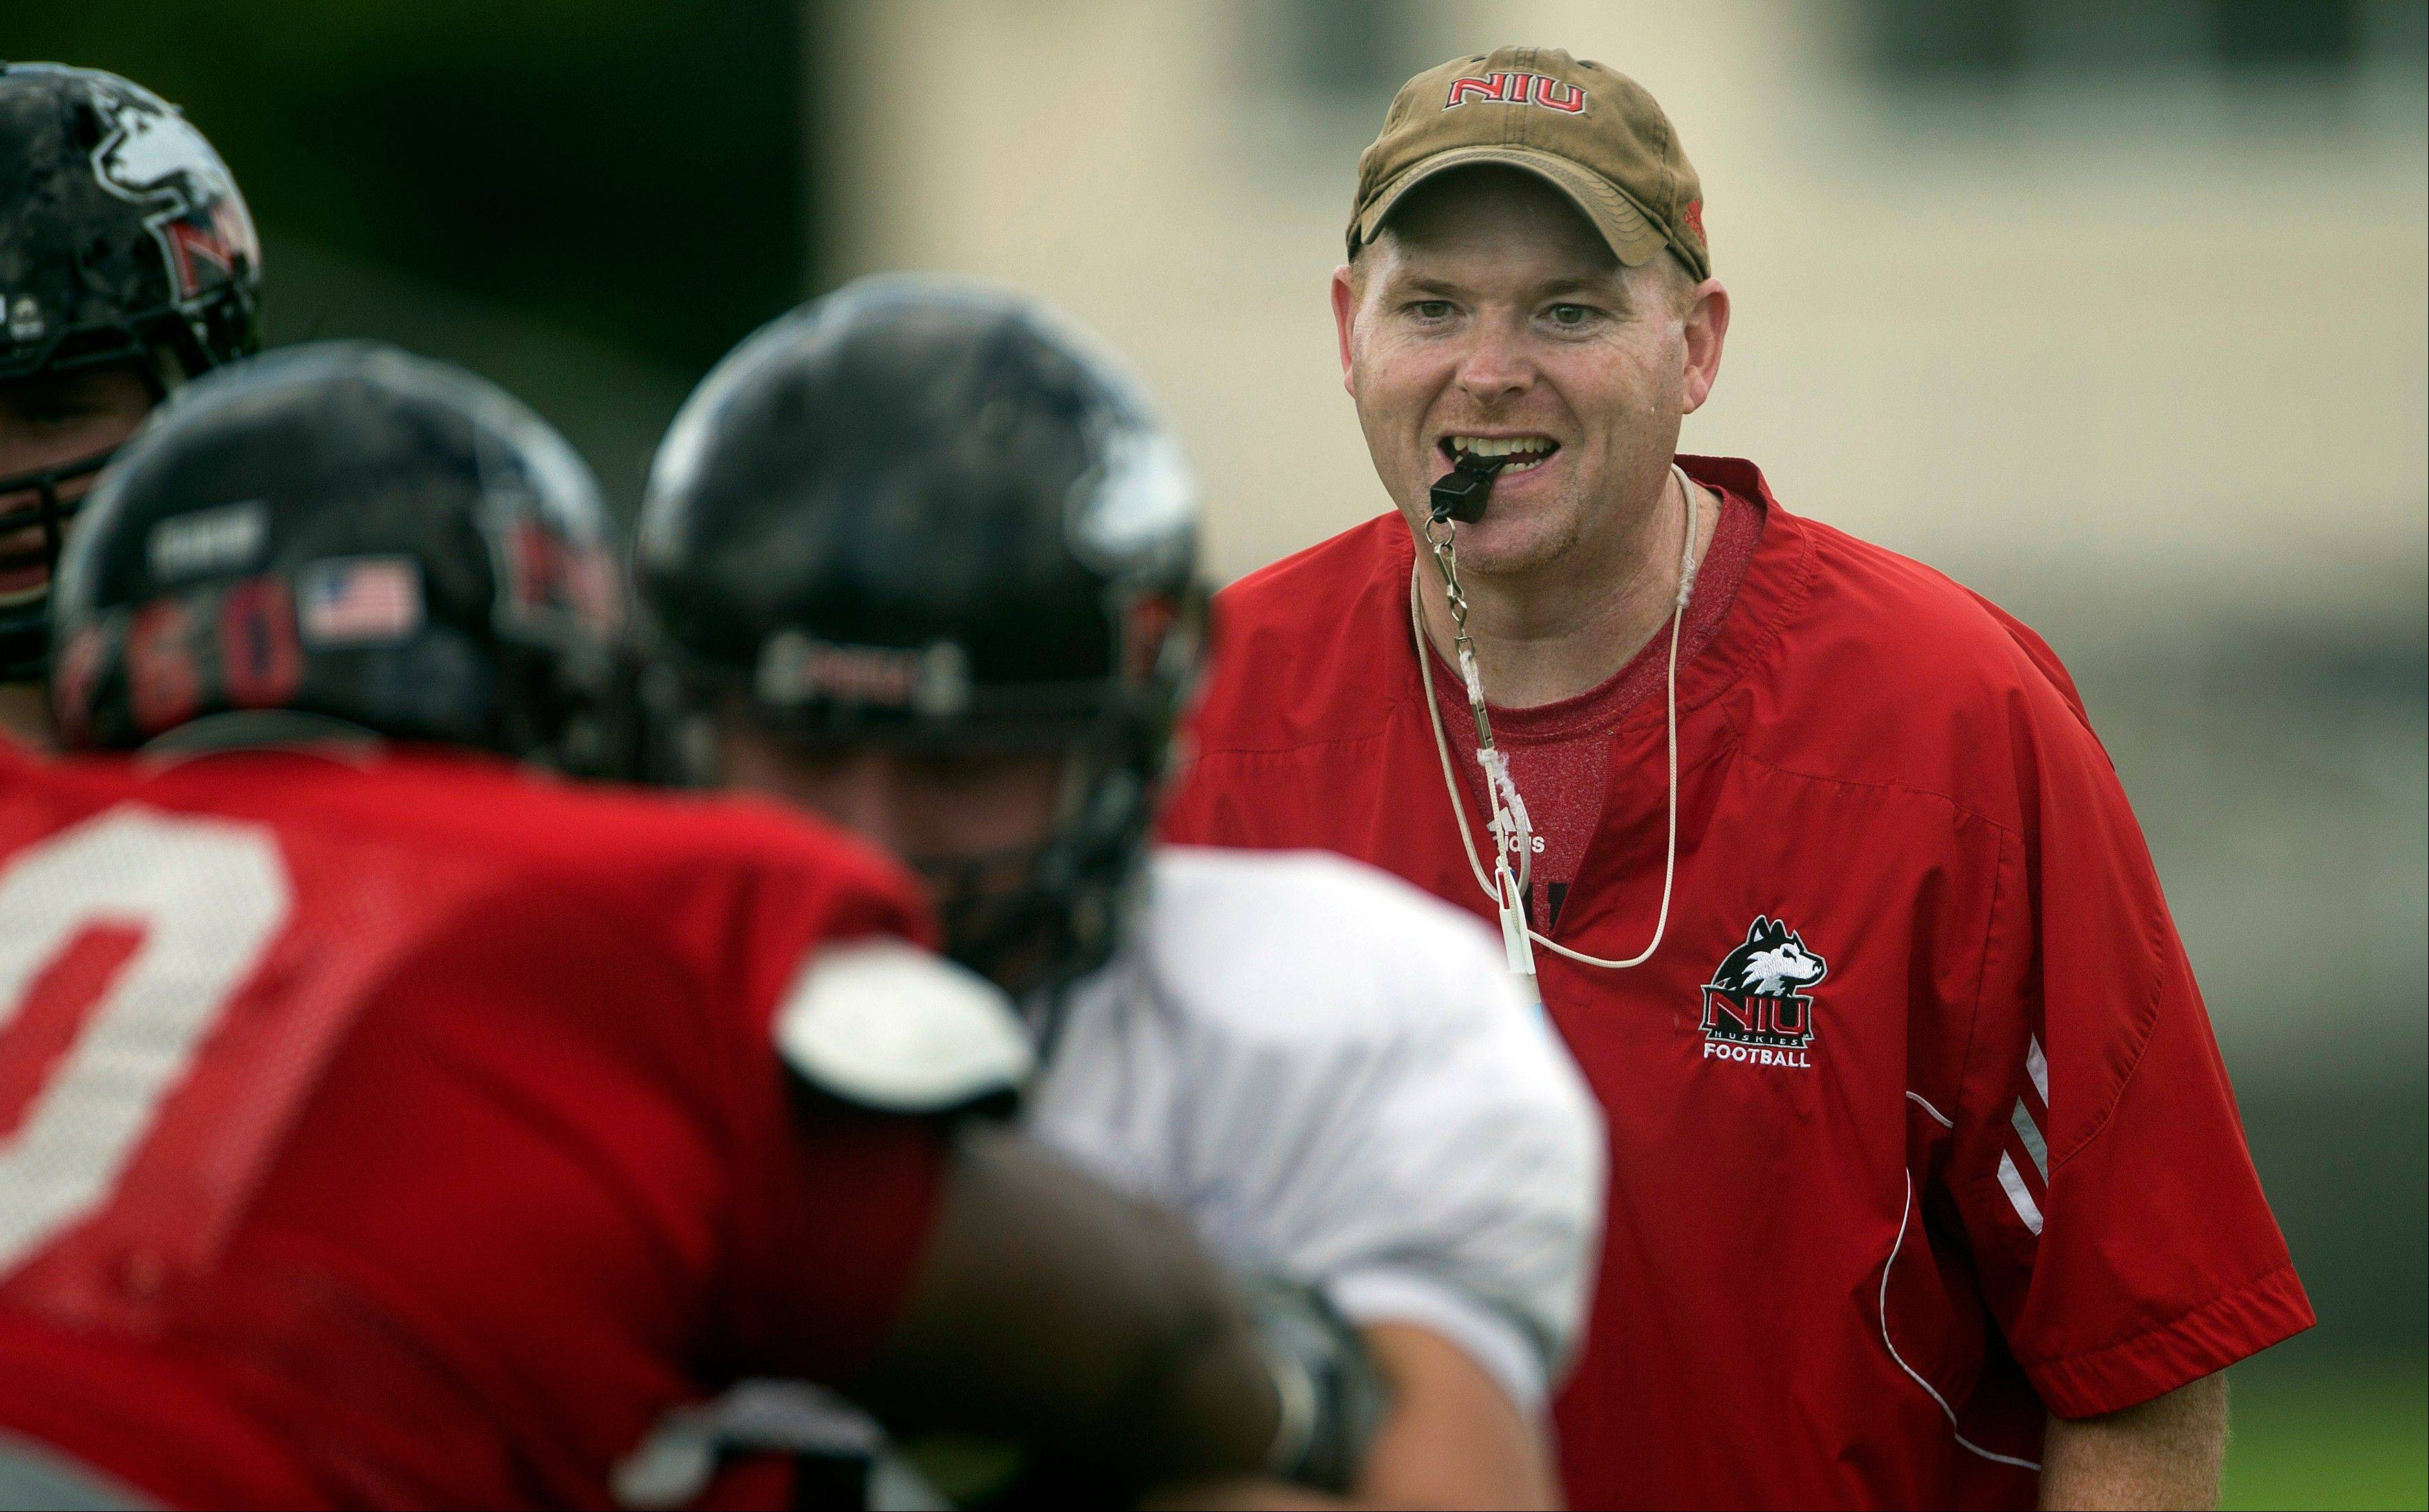 Northern Illinois coach Rod Carey has added several new assistants and realigned his staff for the 2013 season.